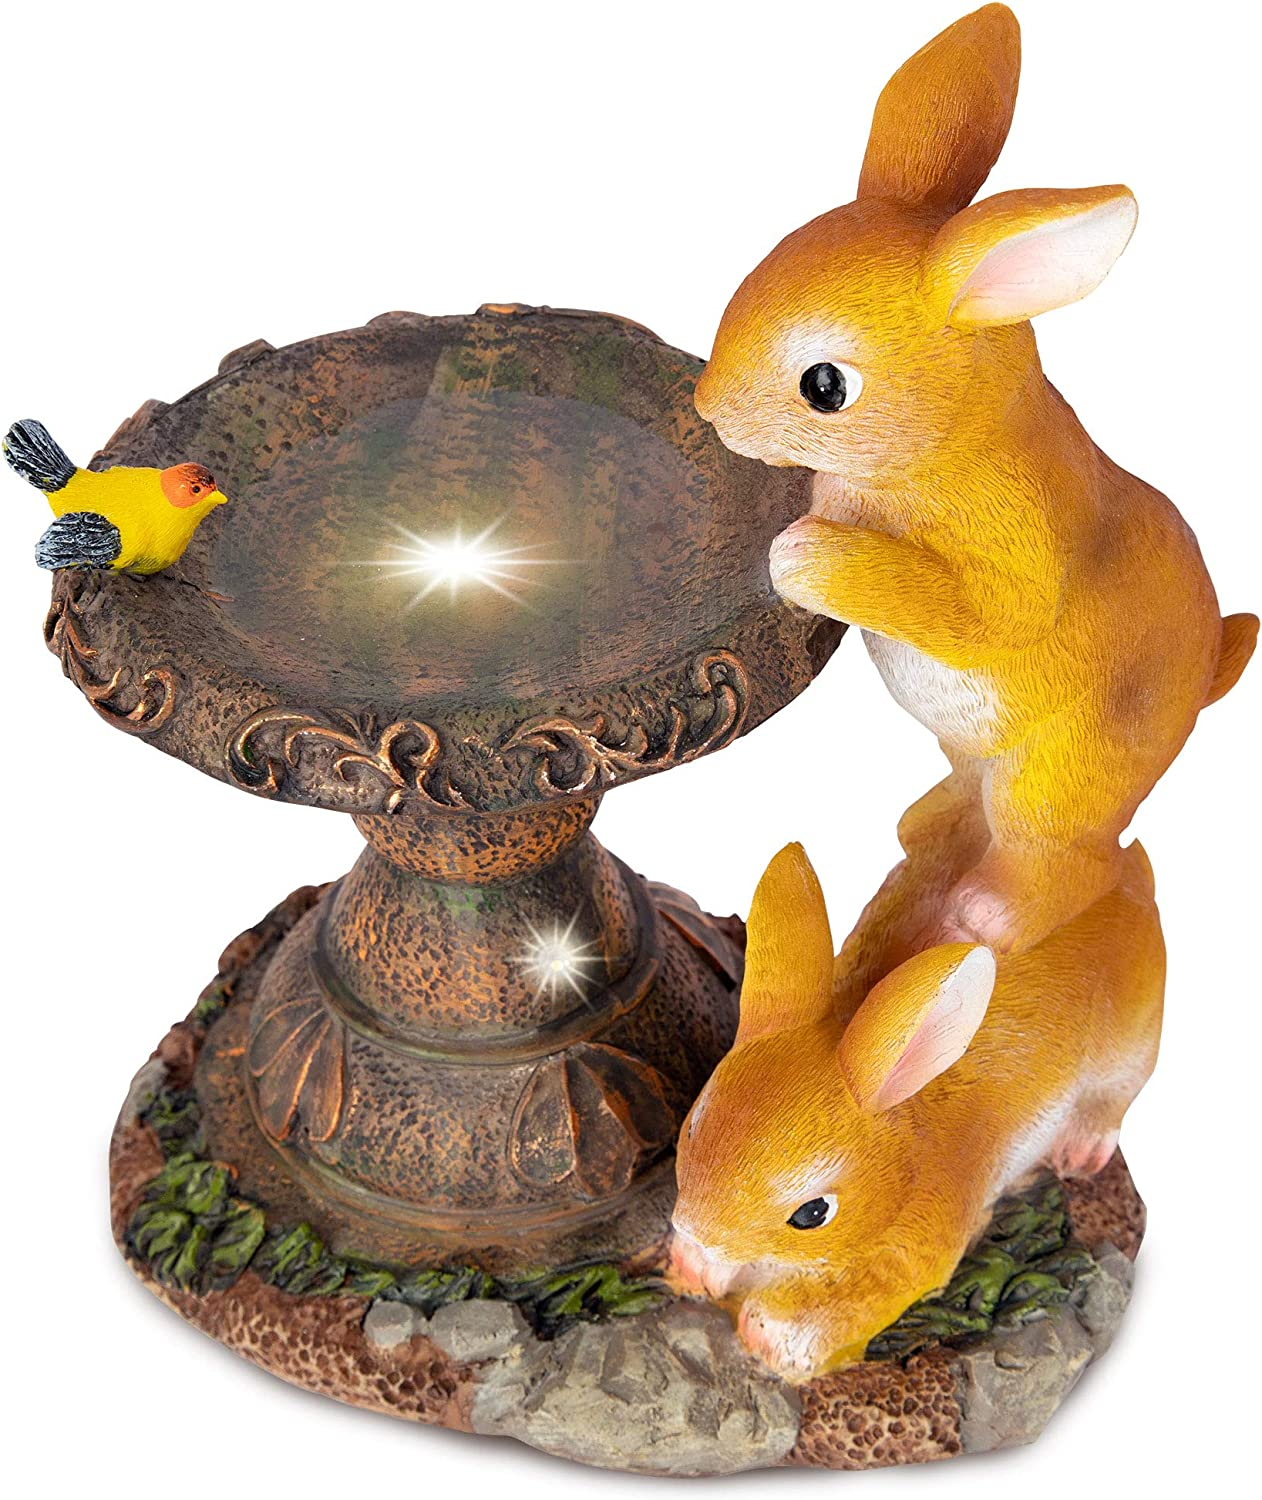 RealPetaled Rabbit Garden Statues and Figurines, Garden Art Outdoor for All Seasons-Garden Decor, Solar Statue with 2 Calla Lily Lights, Garden Figurines Outdoor Gift for Patio, Lawn, Yard